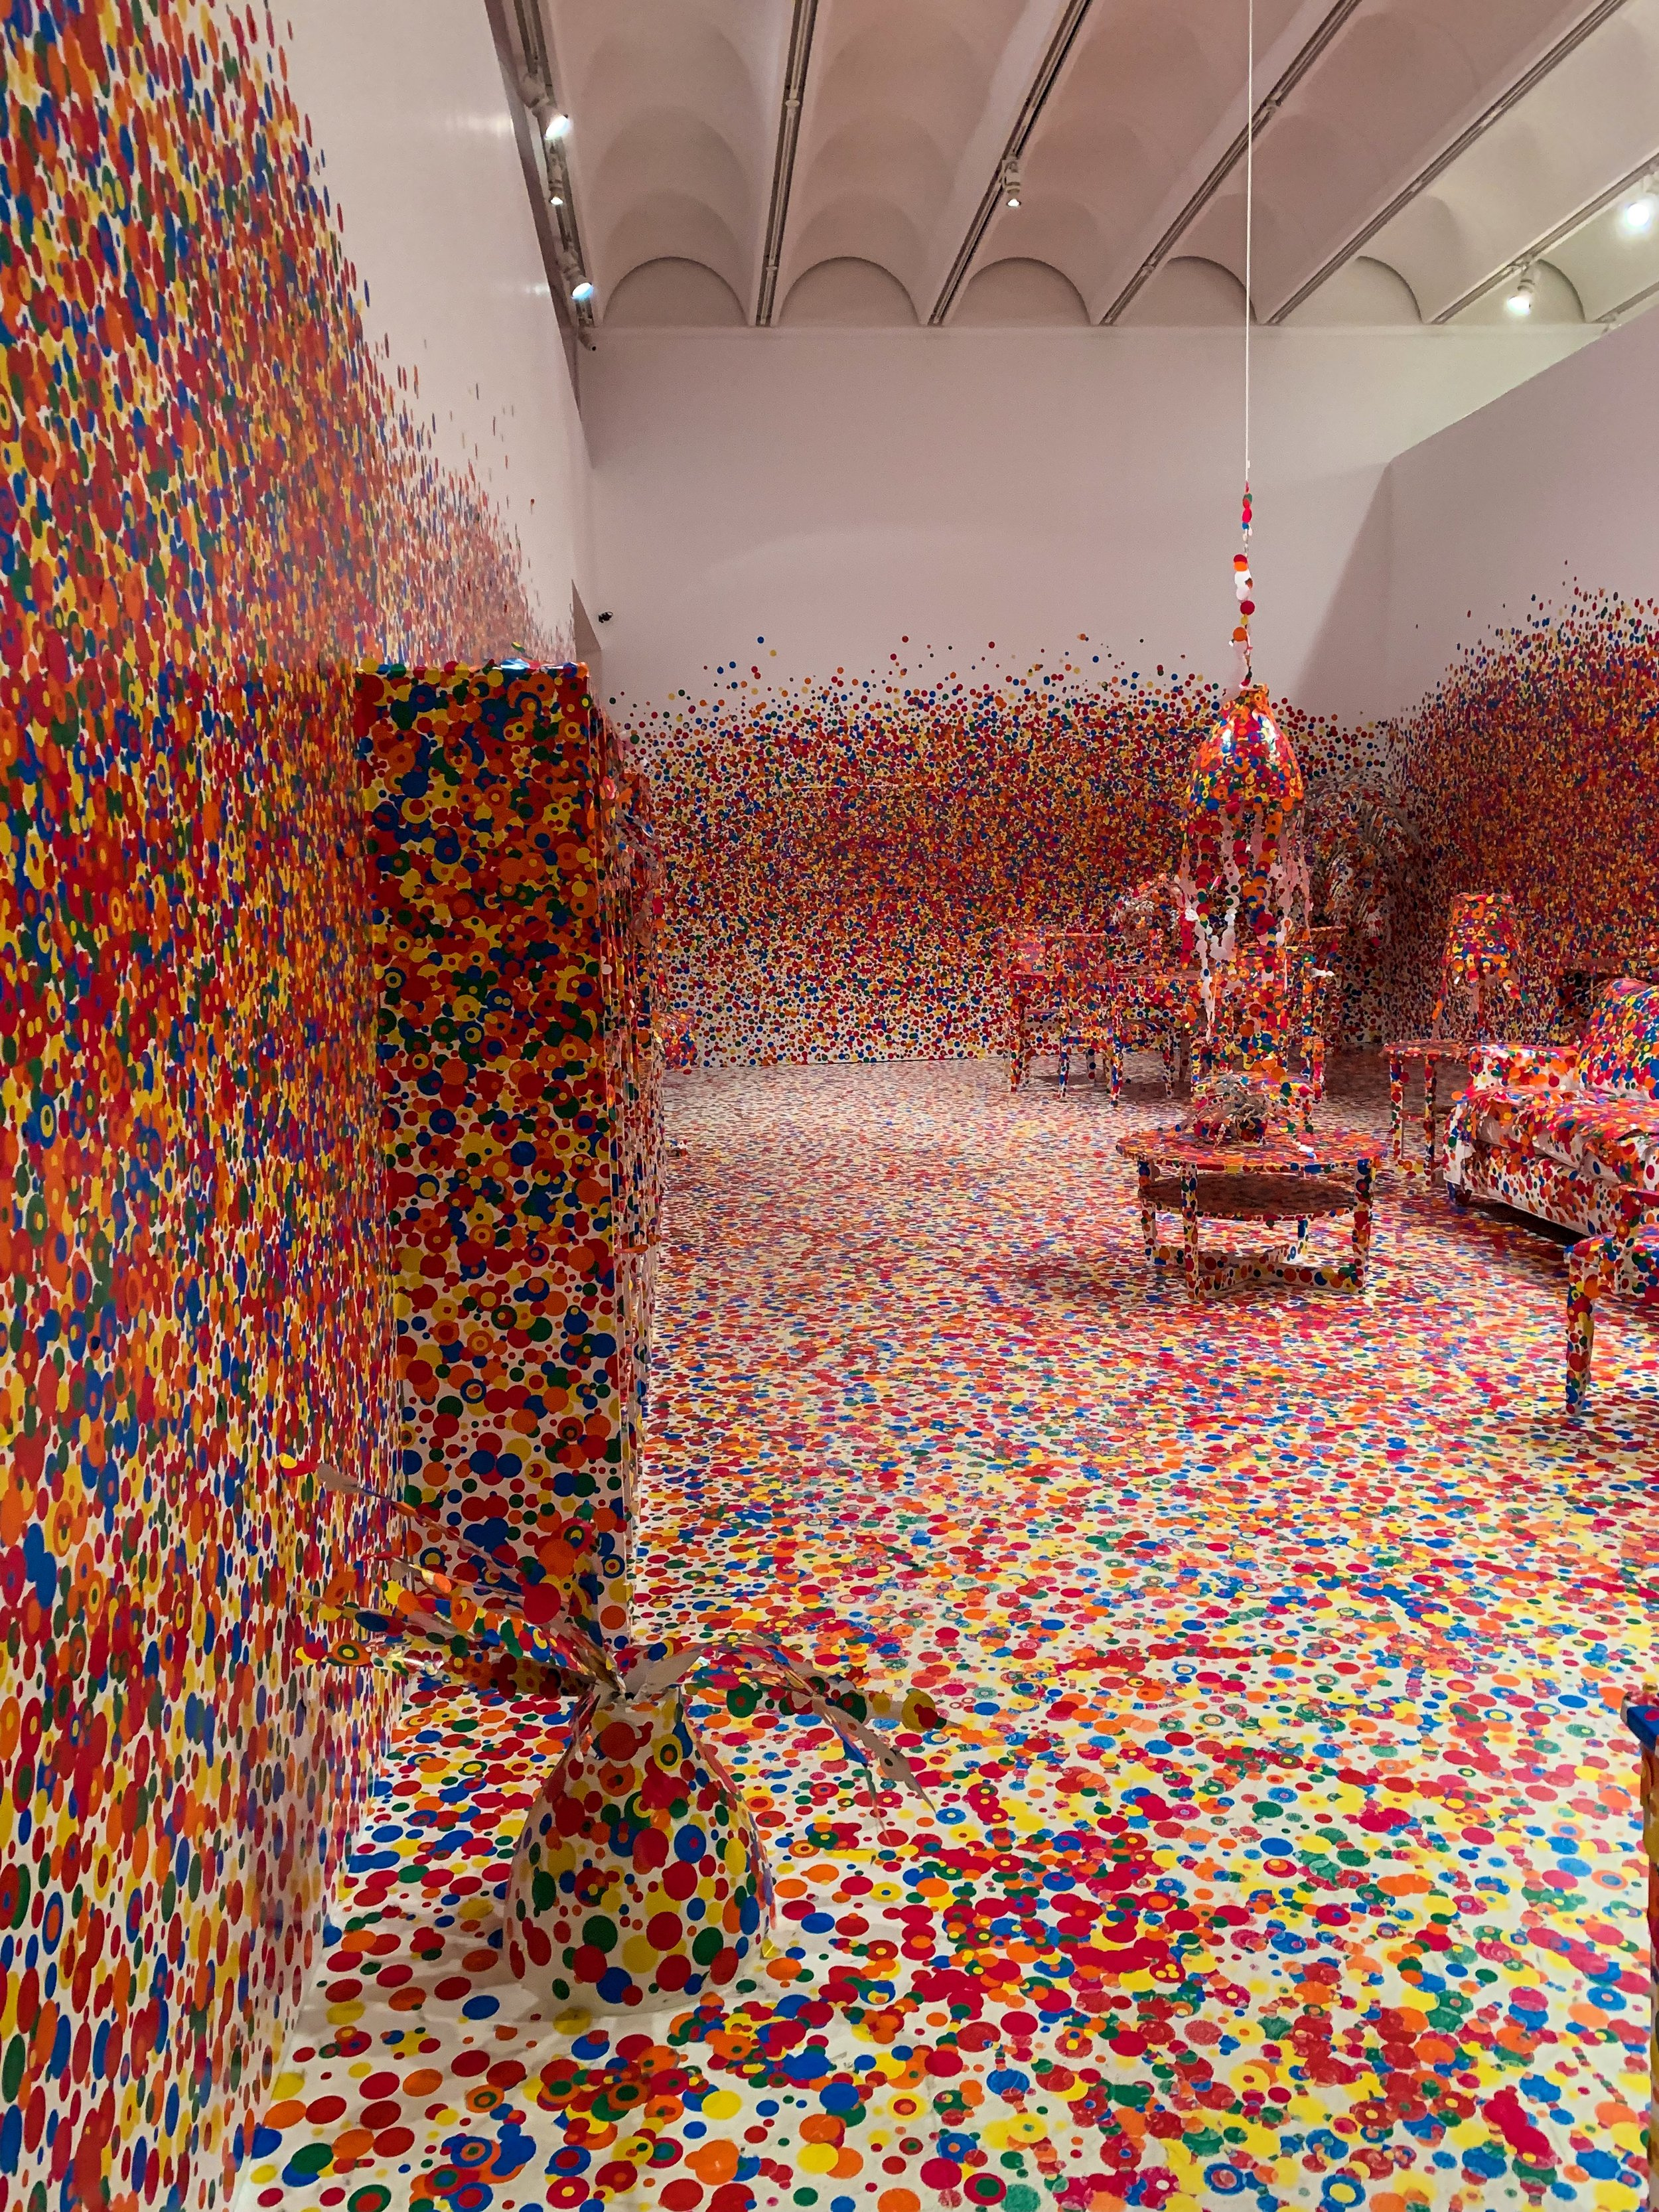 The Obliteration Room, 2002-Present, Installed 2018